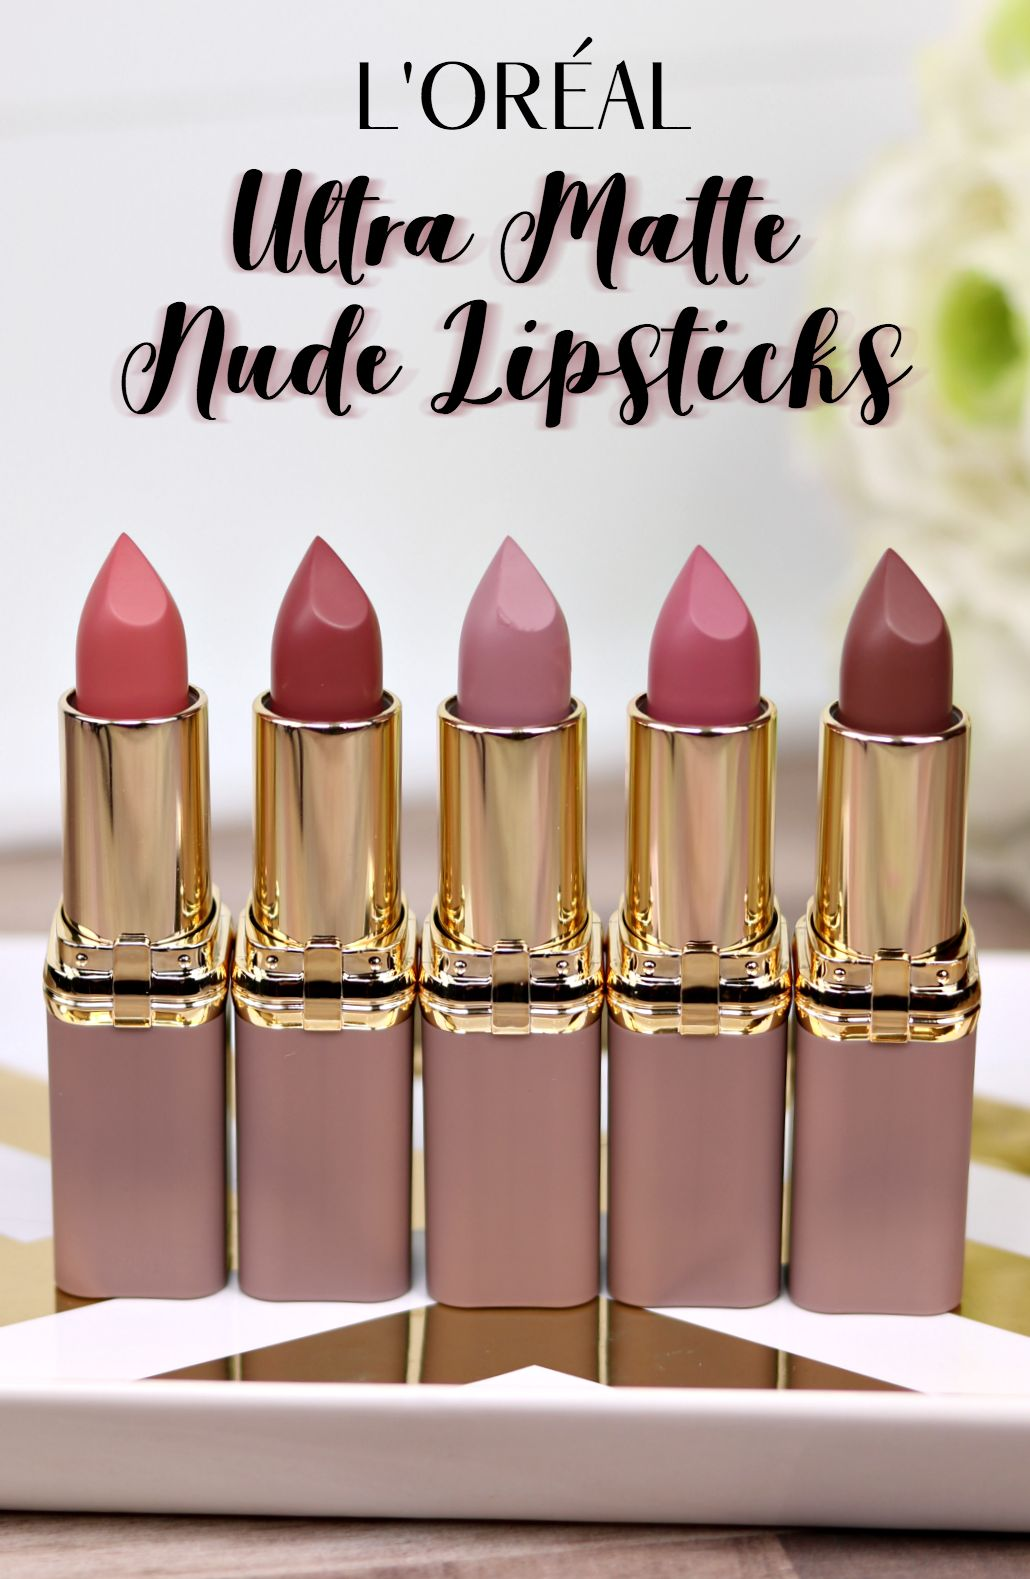 #LOreal Ultra Matte Nude #Lipstick Review